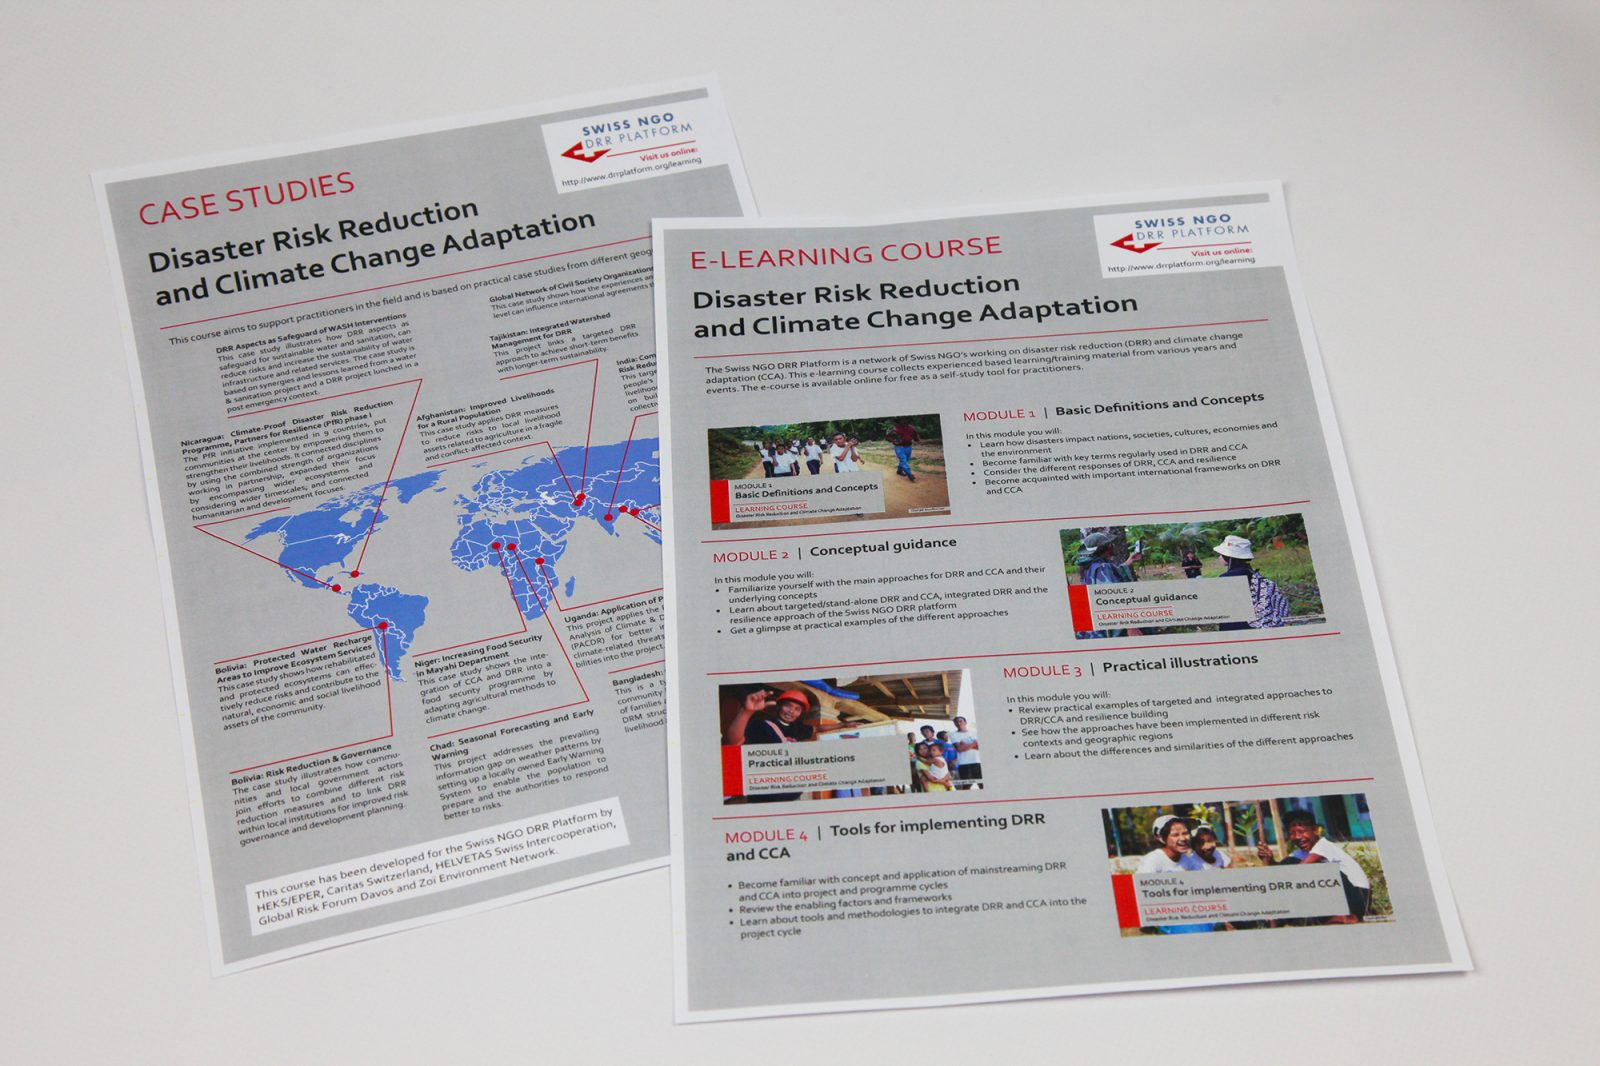 E-learning course: disaster risk reduction and climate change.